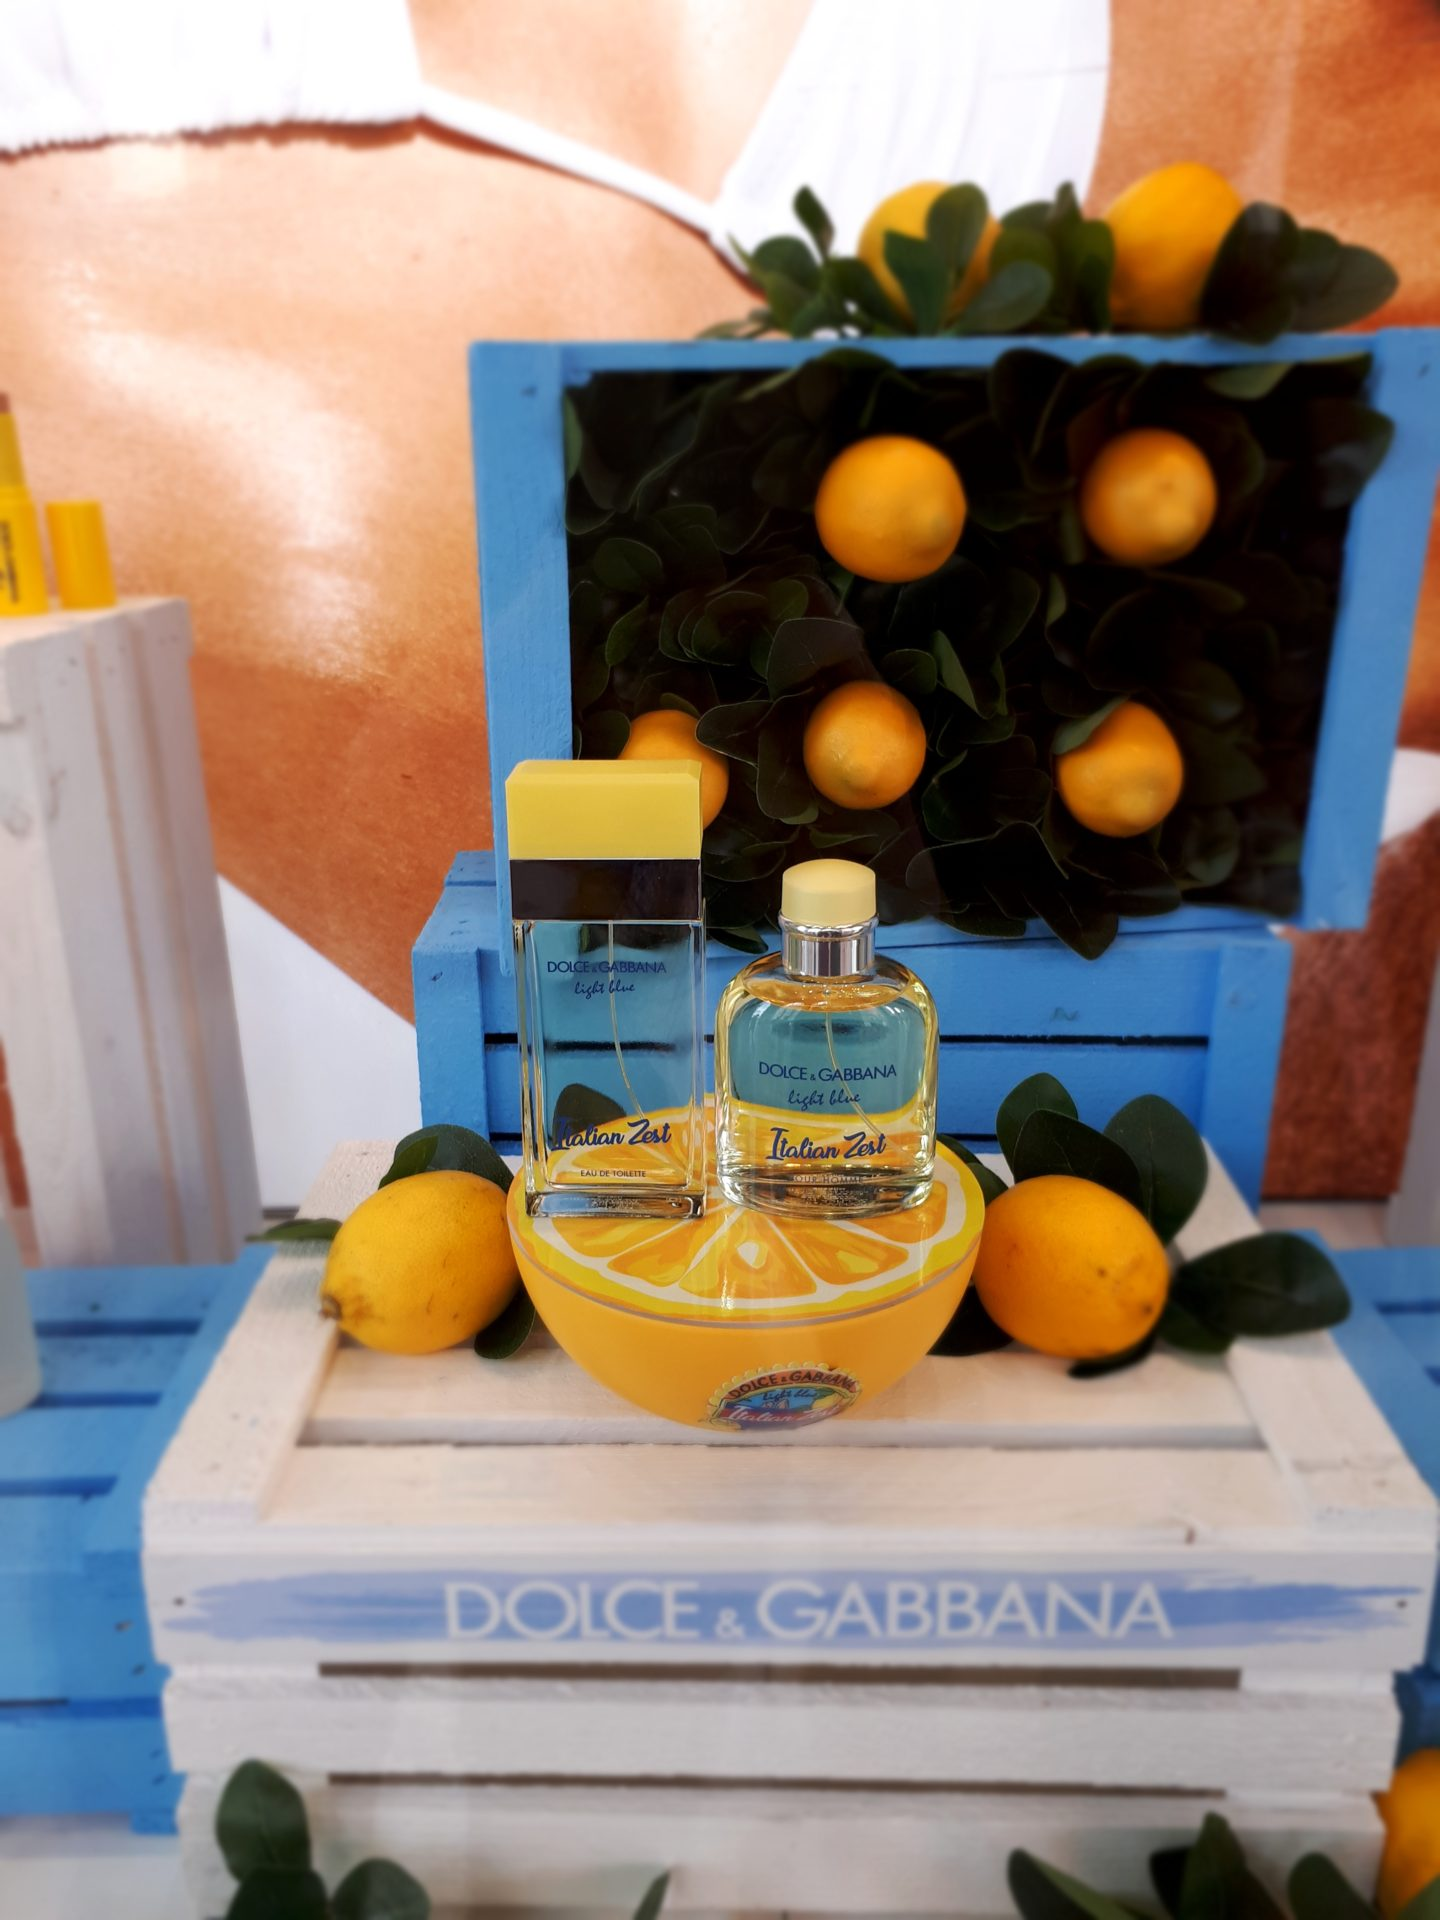 Dolce & Gabbana Light Blue Italian Zest Review